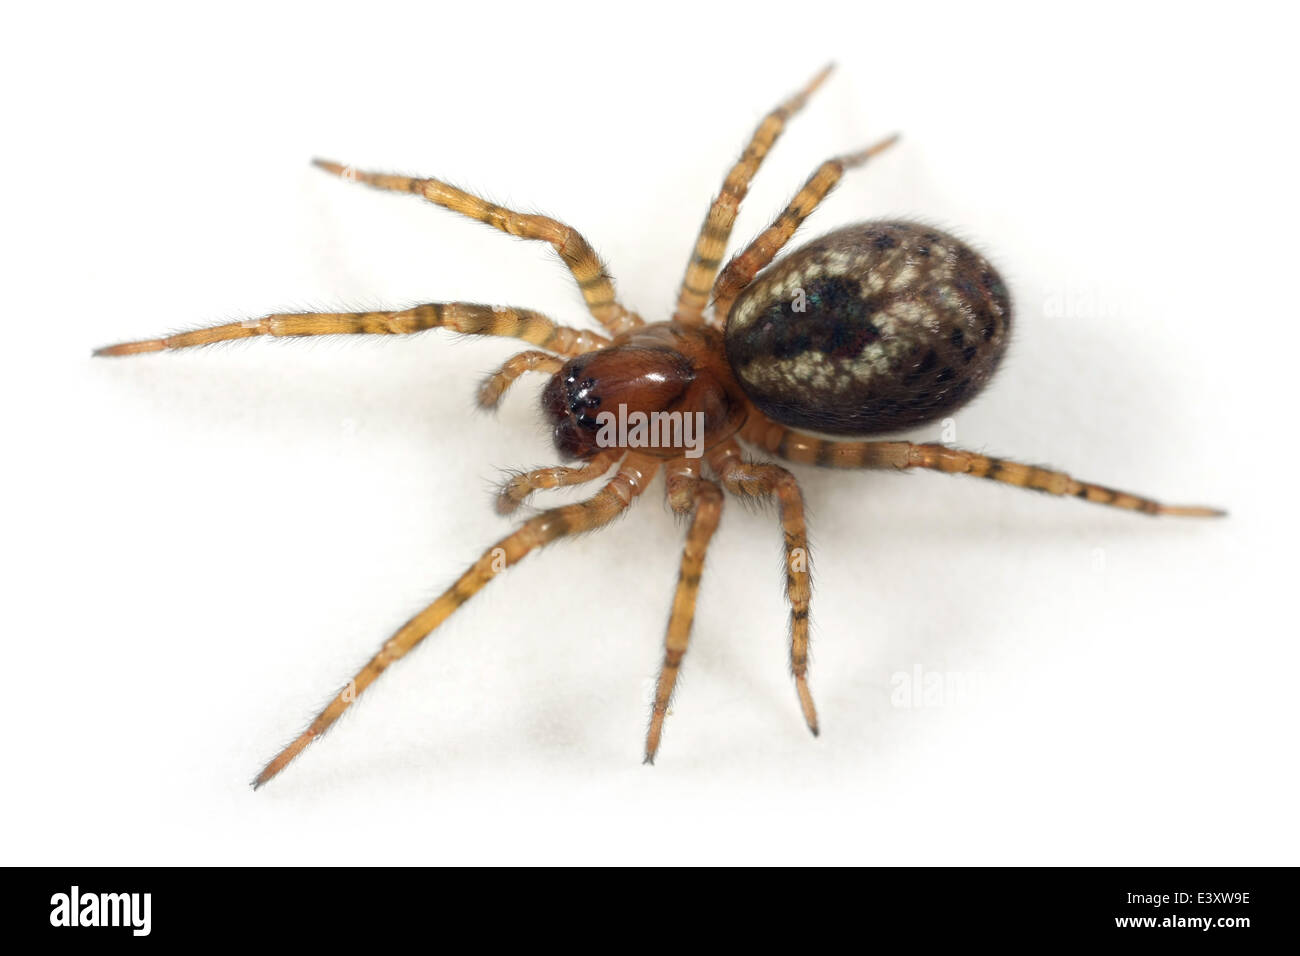 Window lace-weaver (Amaurobius fenestralis) spider, part of the family Amaurobiidae -  Tangled nest spiders. Stock Photo